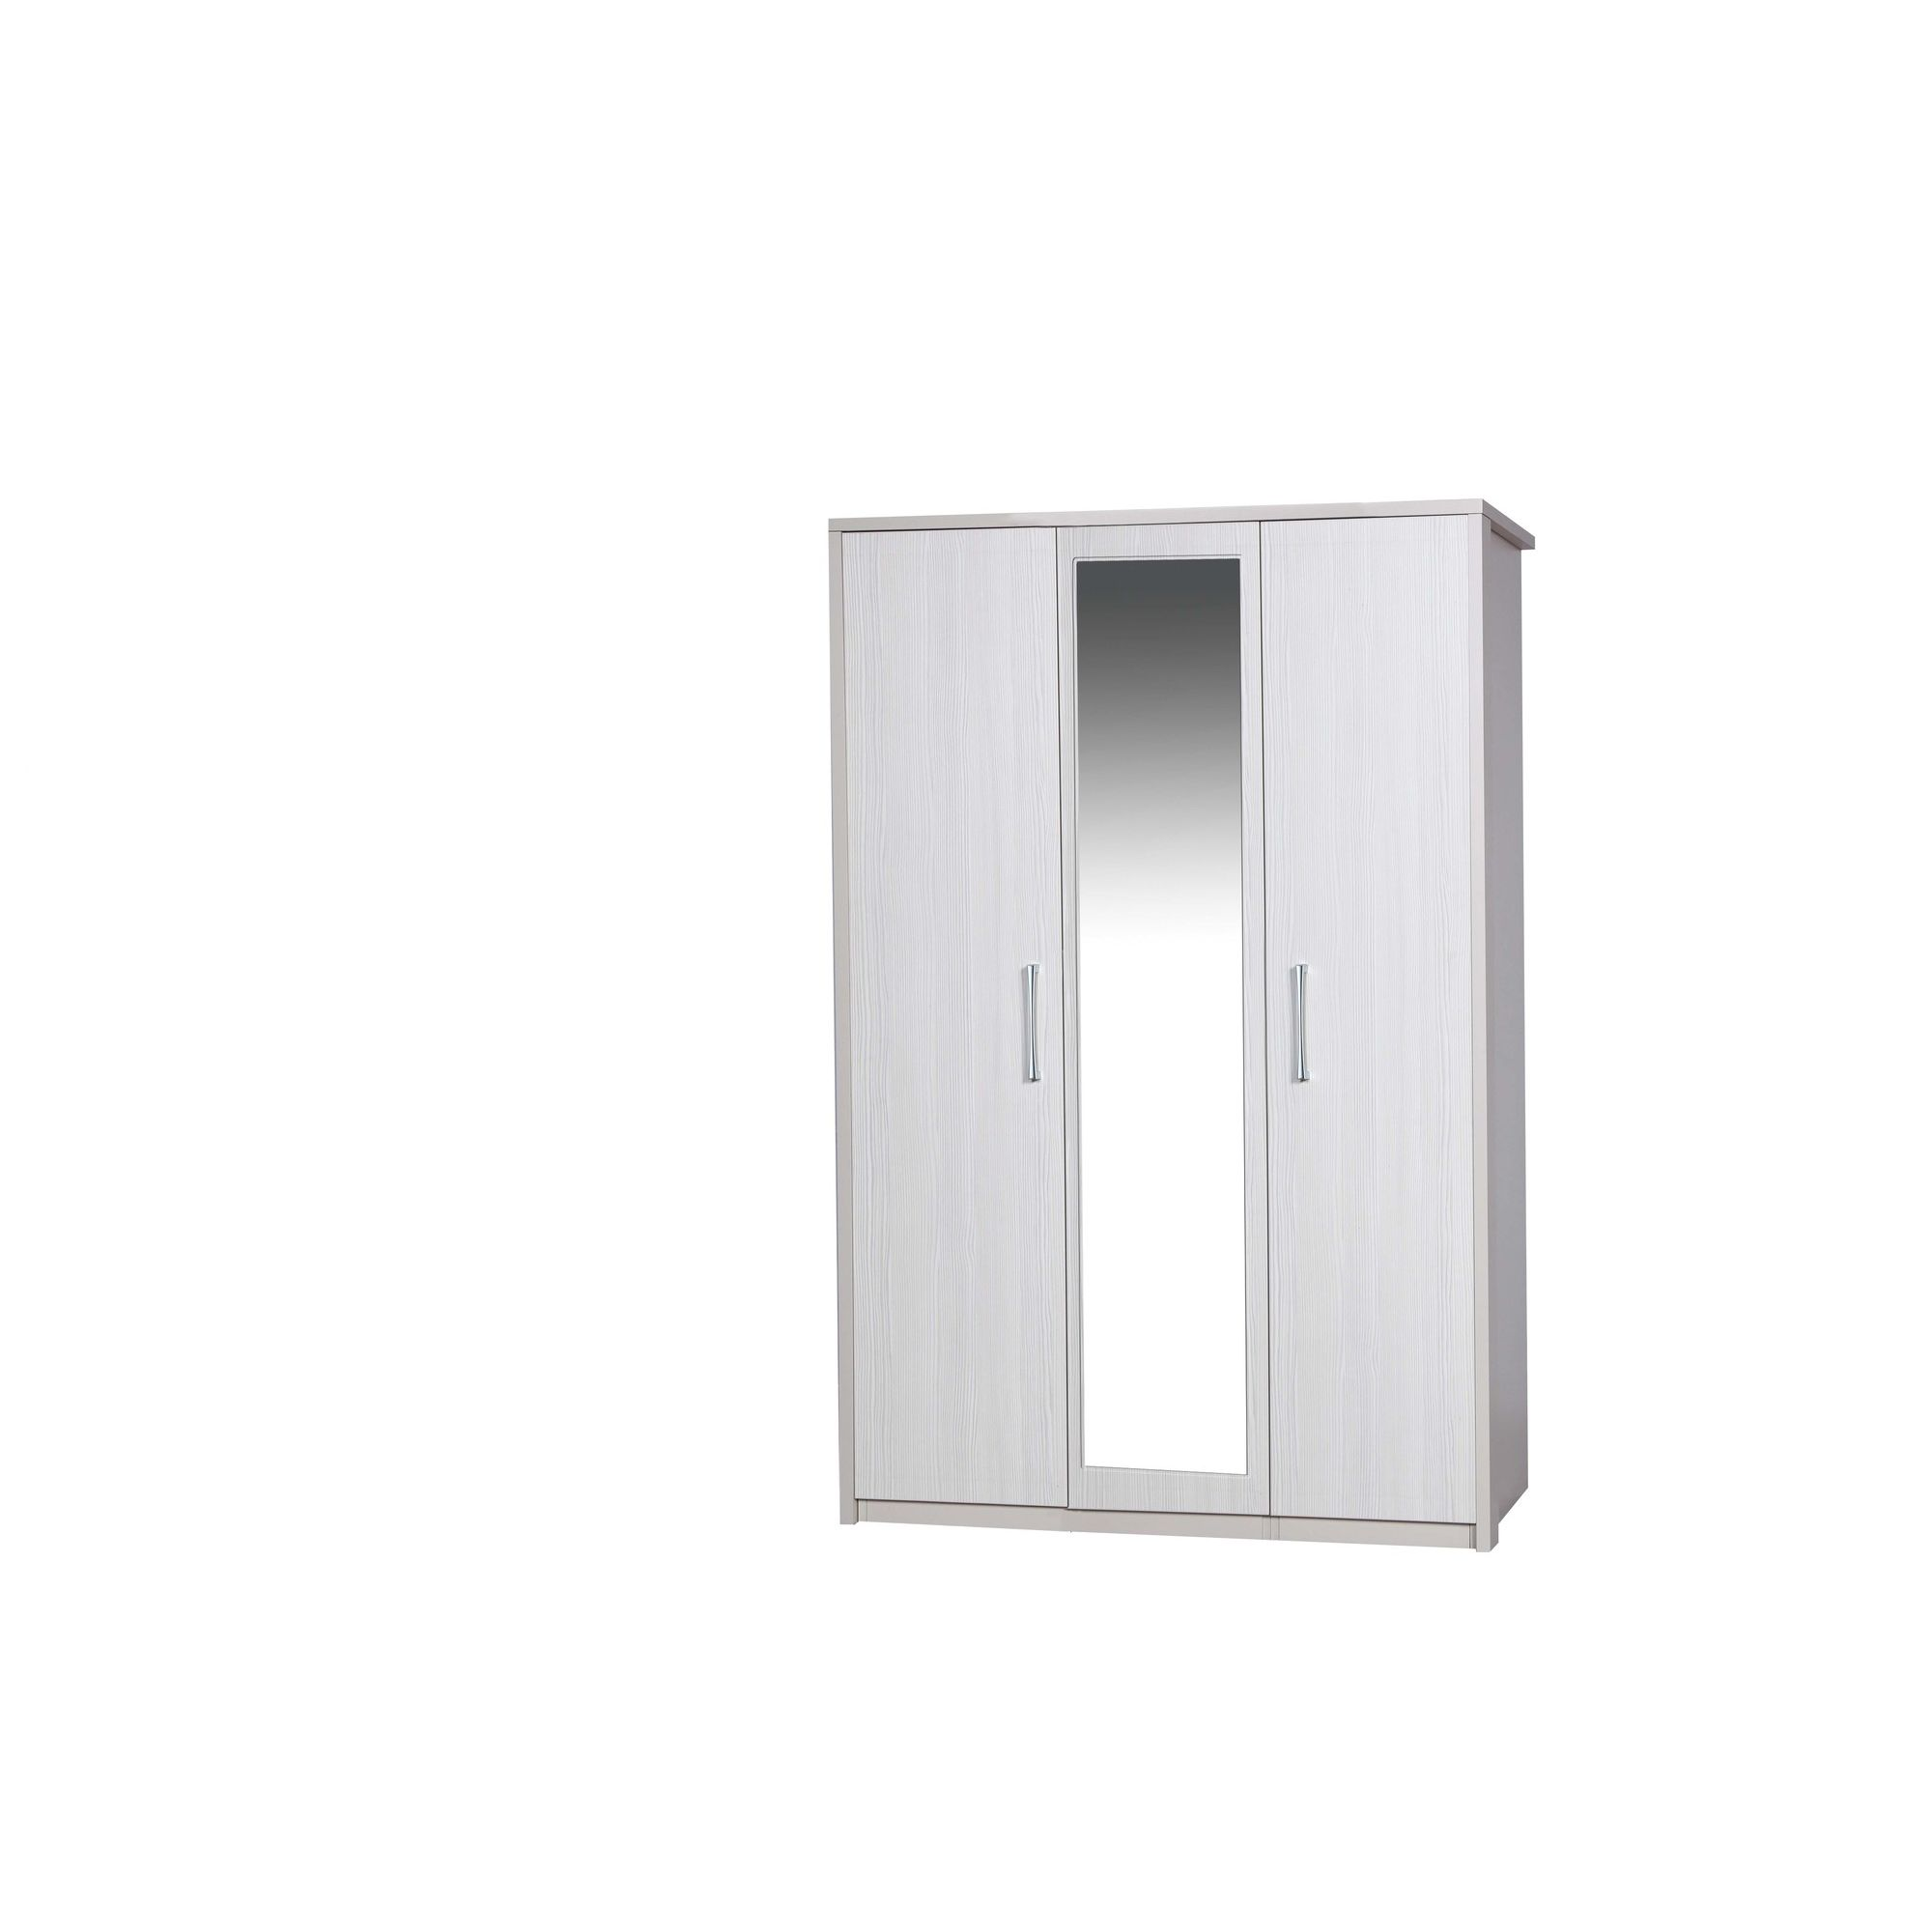 Alto Furniture Avola 3 Door Wardrobe with Mirror - Cream Carcass With White Avola at Tesco Direct